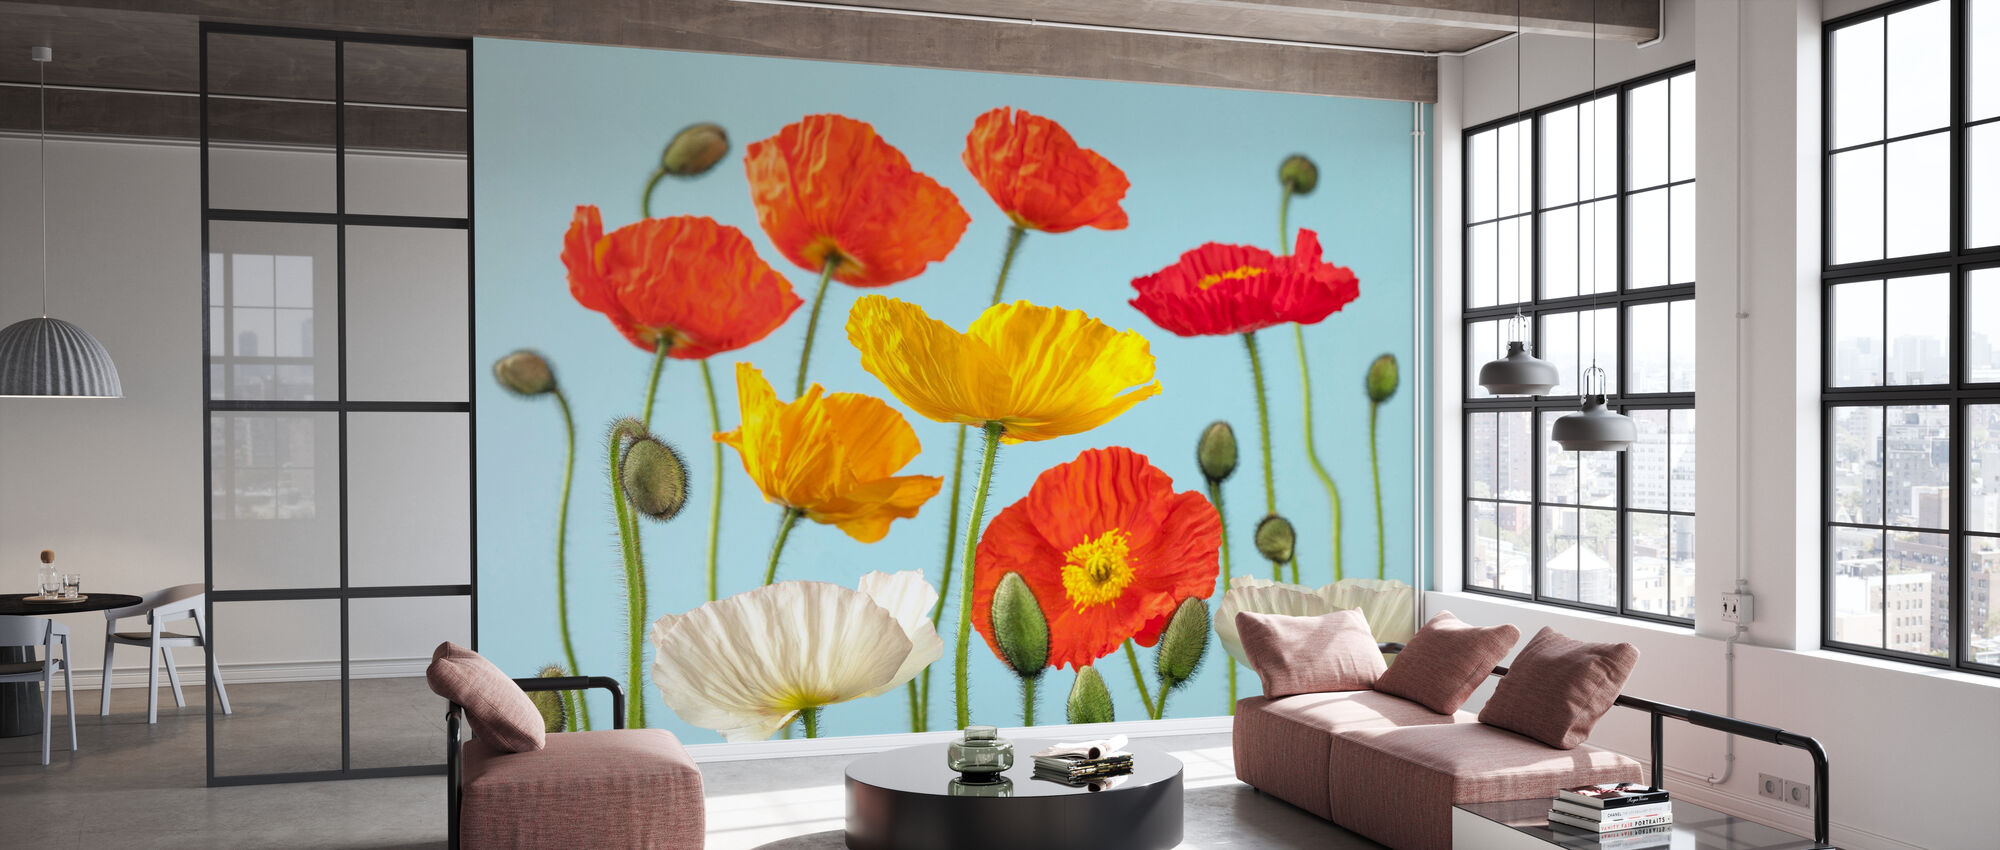 Poppies - Colorful - Wallpaper - Office